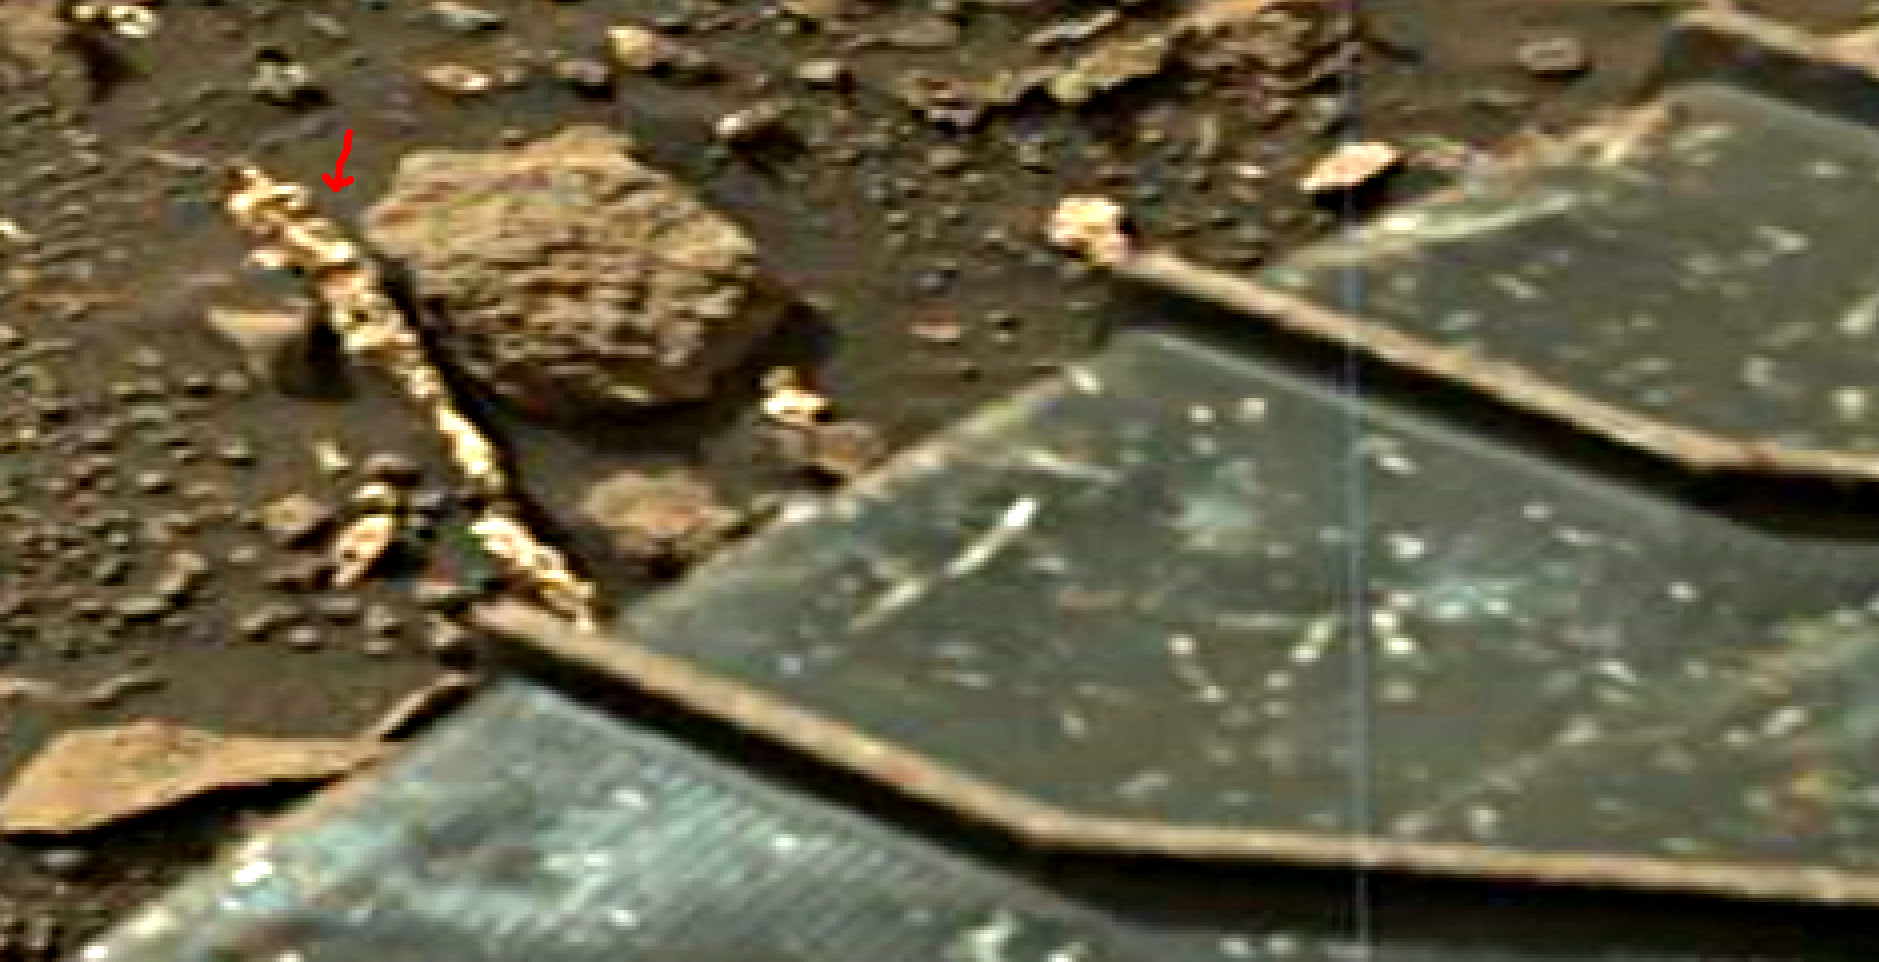 mars-sol-1451-anomaly-artifacts-14-was-life-on-mars